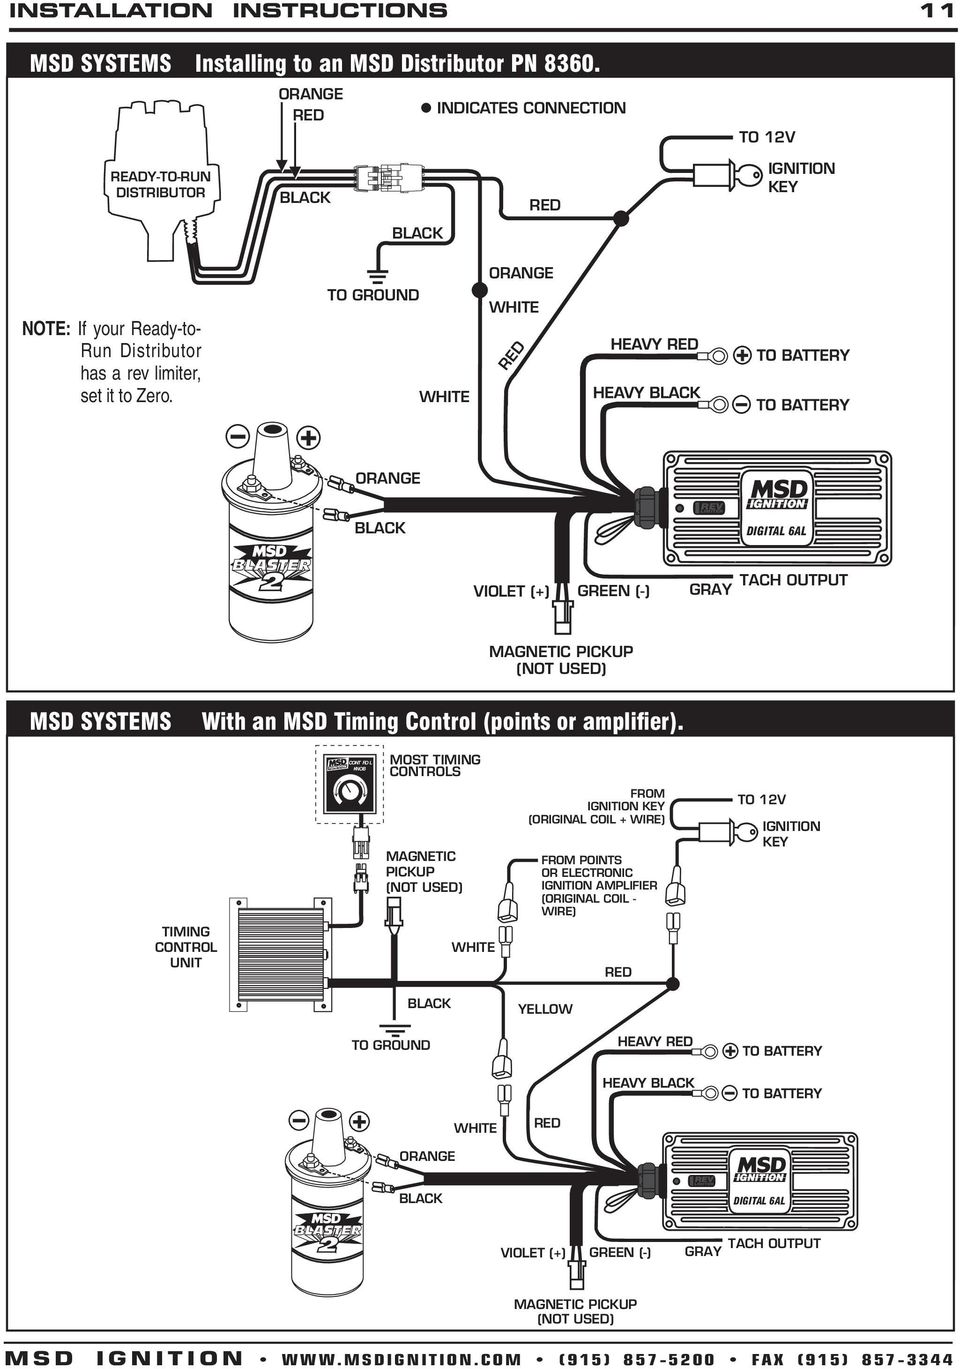 8910 Eis Msd Tach Adapter Wiring Diagram | Wiring Diagram Tel Tac Wiring Diagram Msd on tel tach ii, tel tac oval track pro, tel tac 2 troubleshooting,